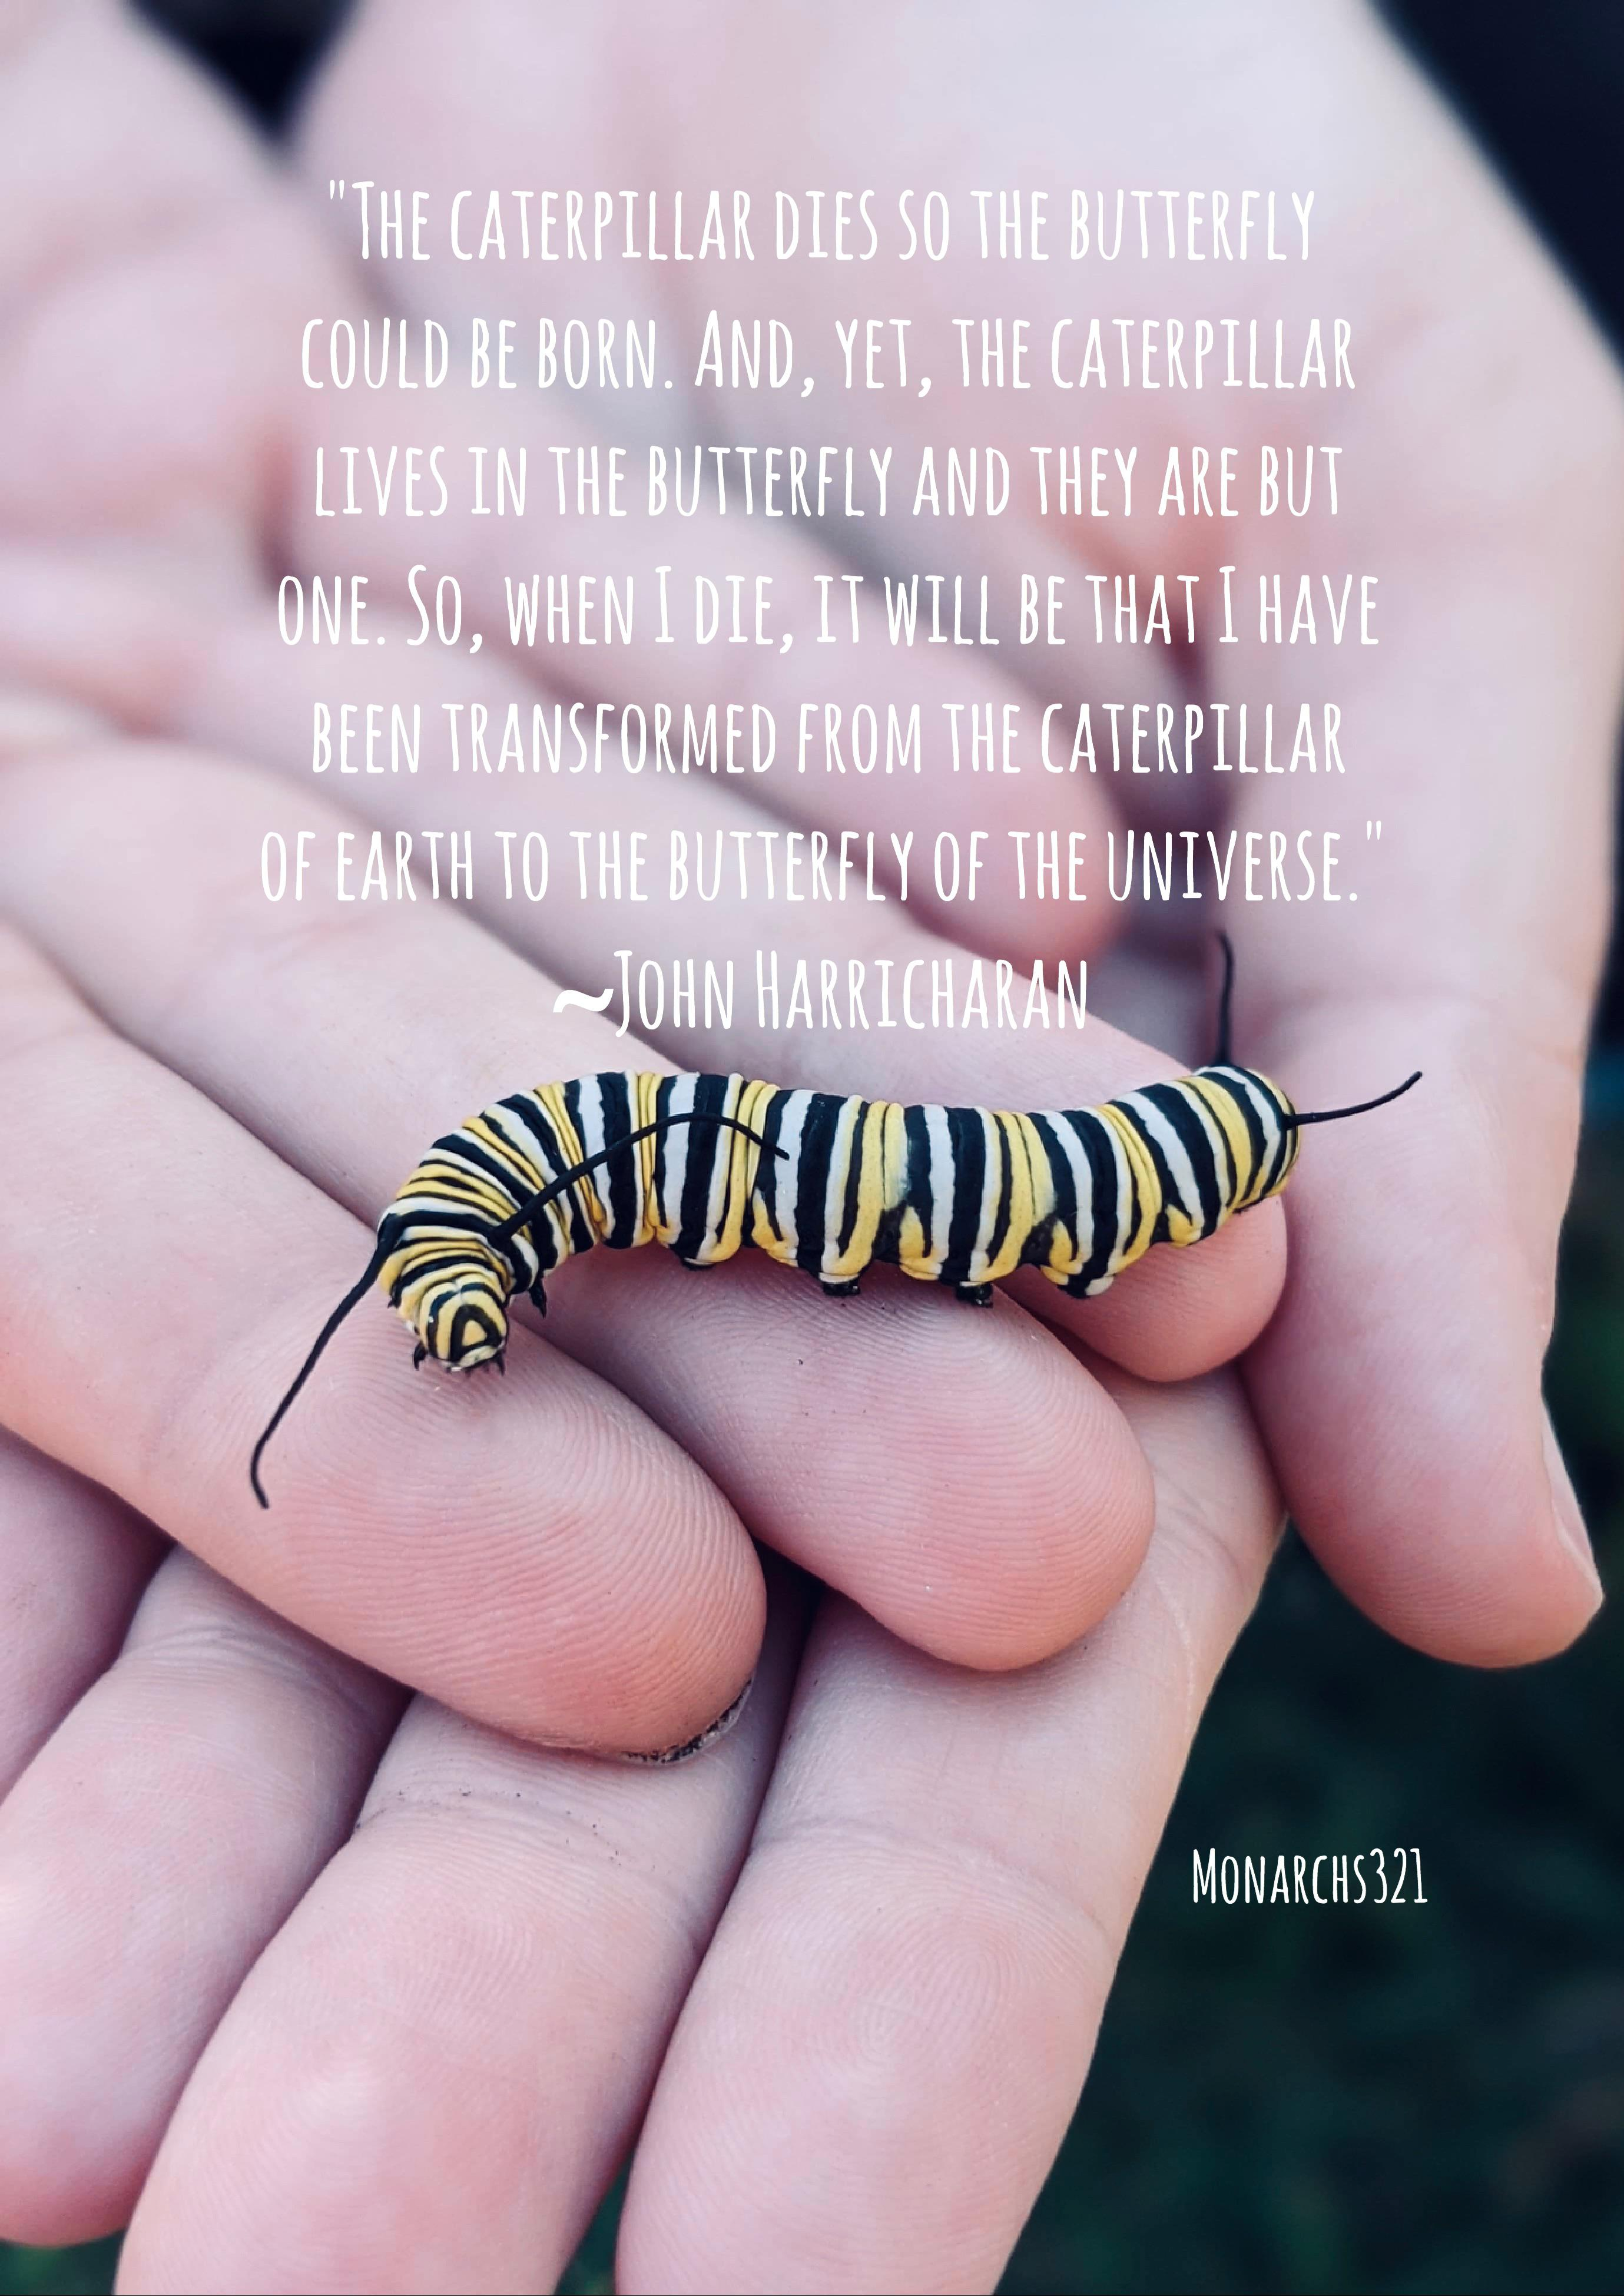 """The caterpillar dies so the butterfly could be born."" -John Harricharan [2758×3899]"